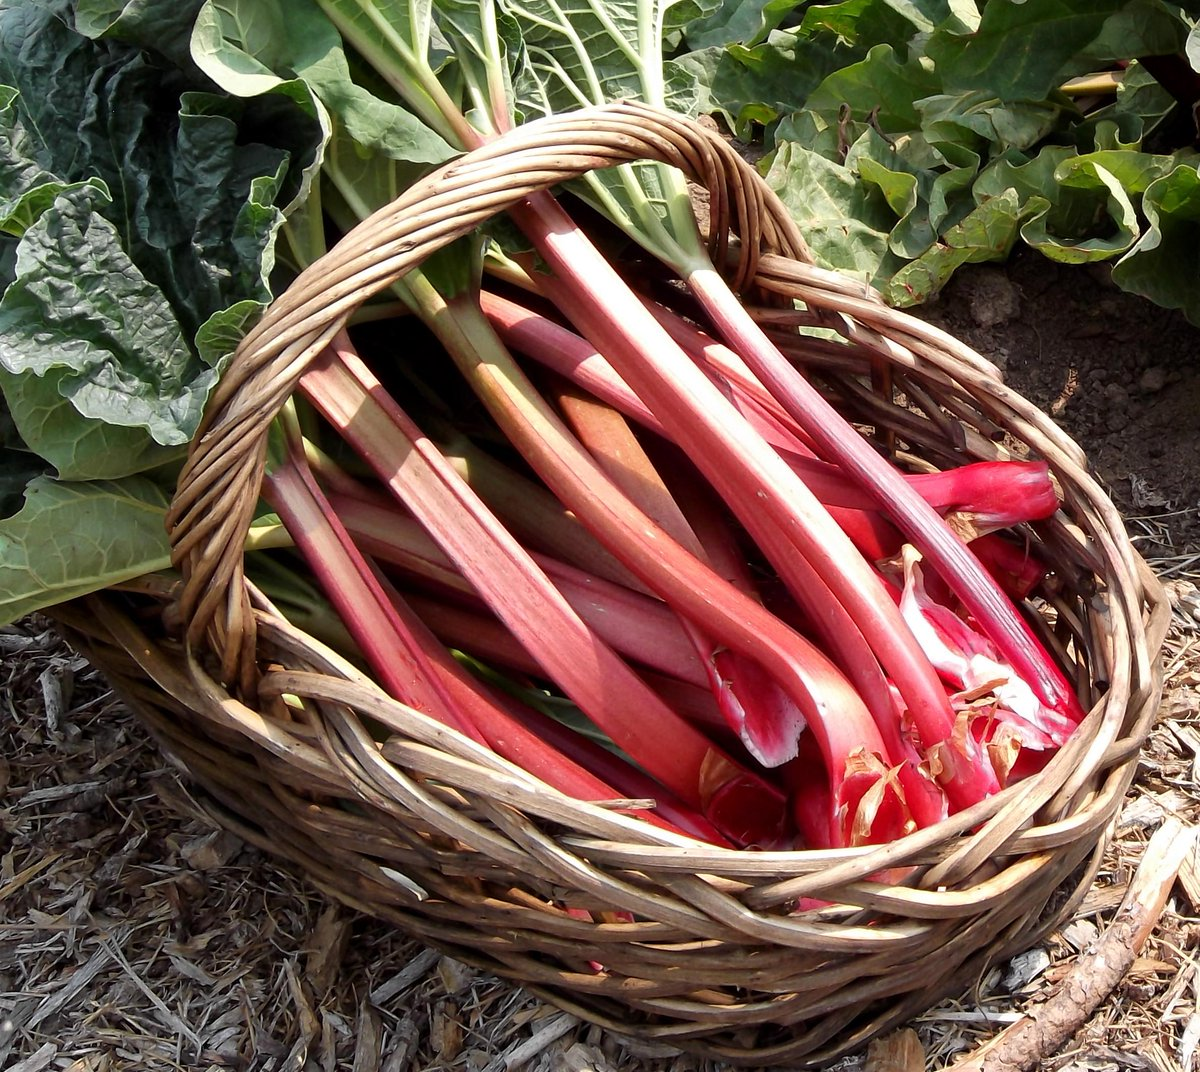 http:// buff.ly/1D4KOTA  &nbsp;   #5 things to do with #surplus #Rhubarb grown from your #Rhubarb #Forcer  http:// buff.ly/1JTnlwx  &nbsp;  <br>http://pic.twitter.com/ZBUwytC5UH